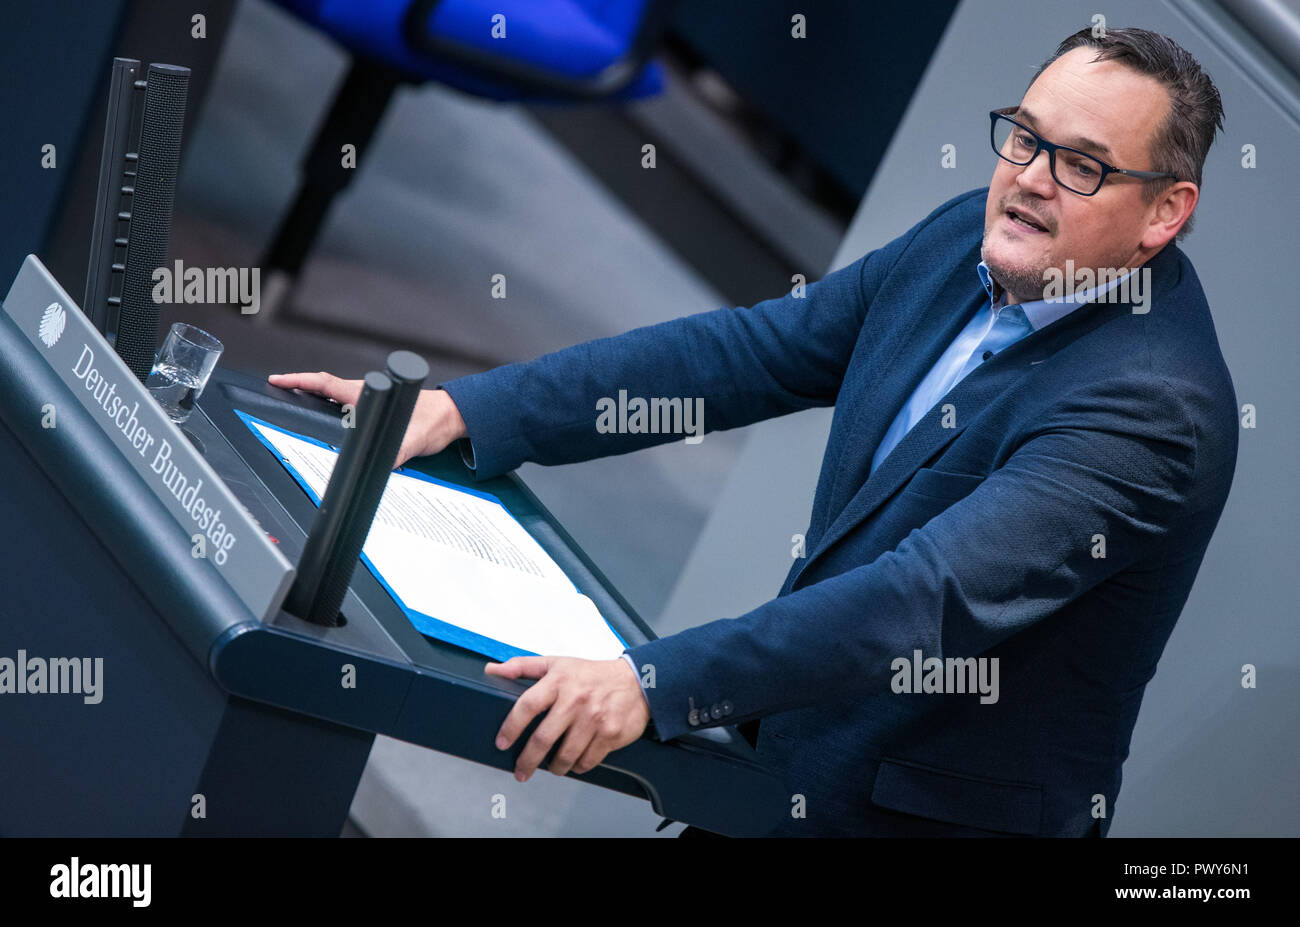 Berlin, Germany. 18th Oct, 2018. Martin Reinhardt, member of the Bundestag of the AfD parliamentary group, will address the Bundestag. Credit: Jens Büttner/dpa-Zentralbild/dpa/Alamy Live News - Stock Image